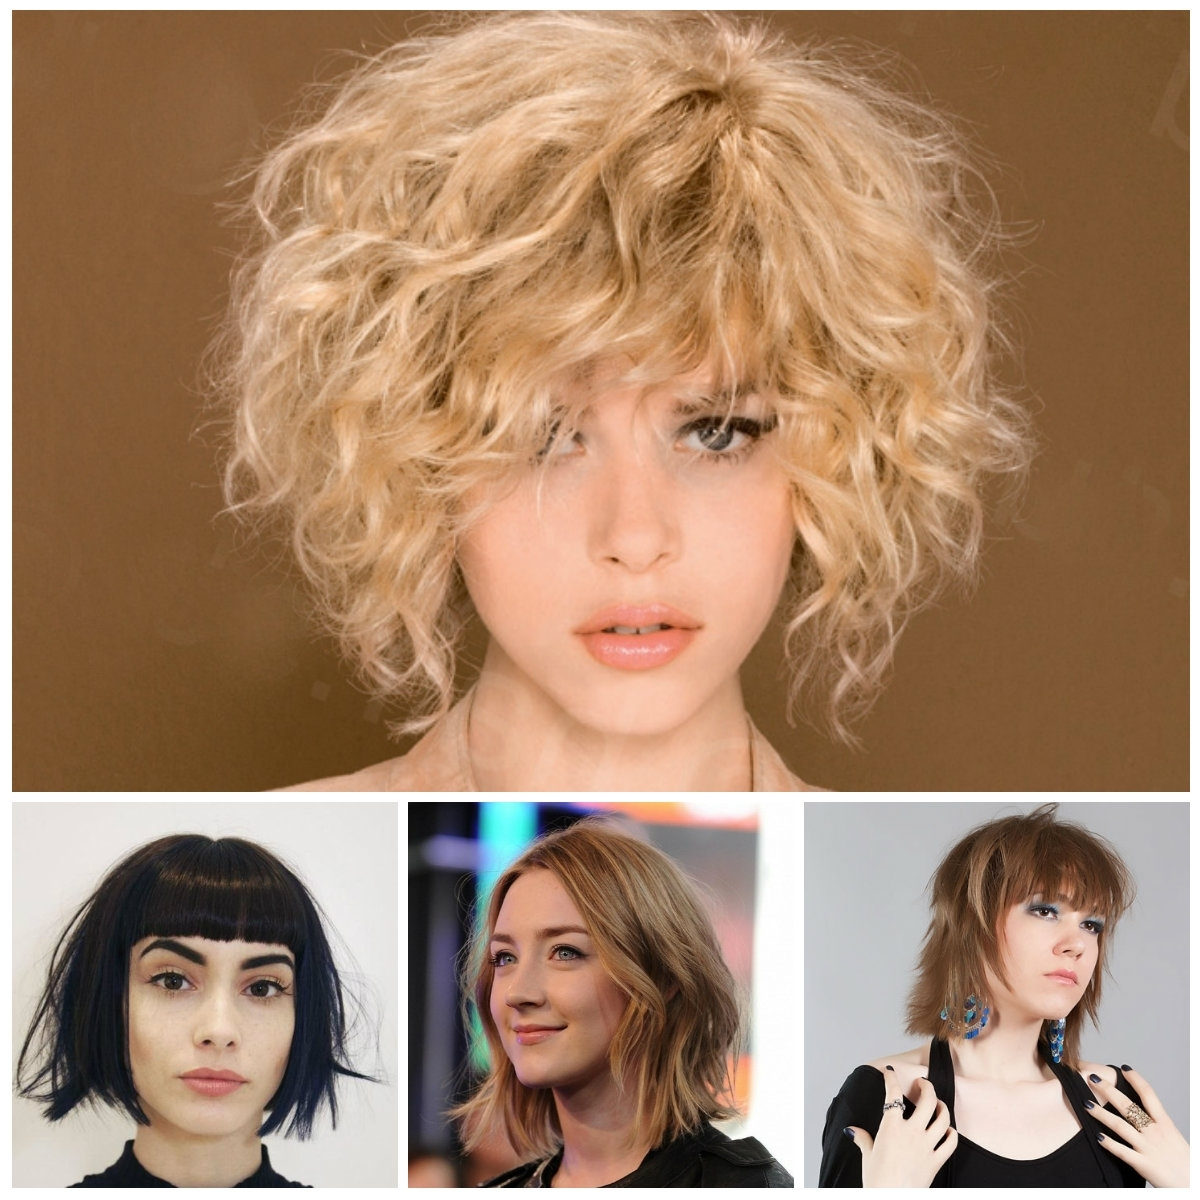 Shaggy Bob Haircut Ideas – New Hairstyles 2017 For Long, Short And Throughout 2017 Shaggy Bob Cut Hairstyles (View 9 of 15)